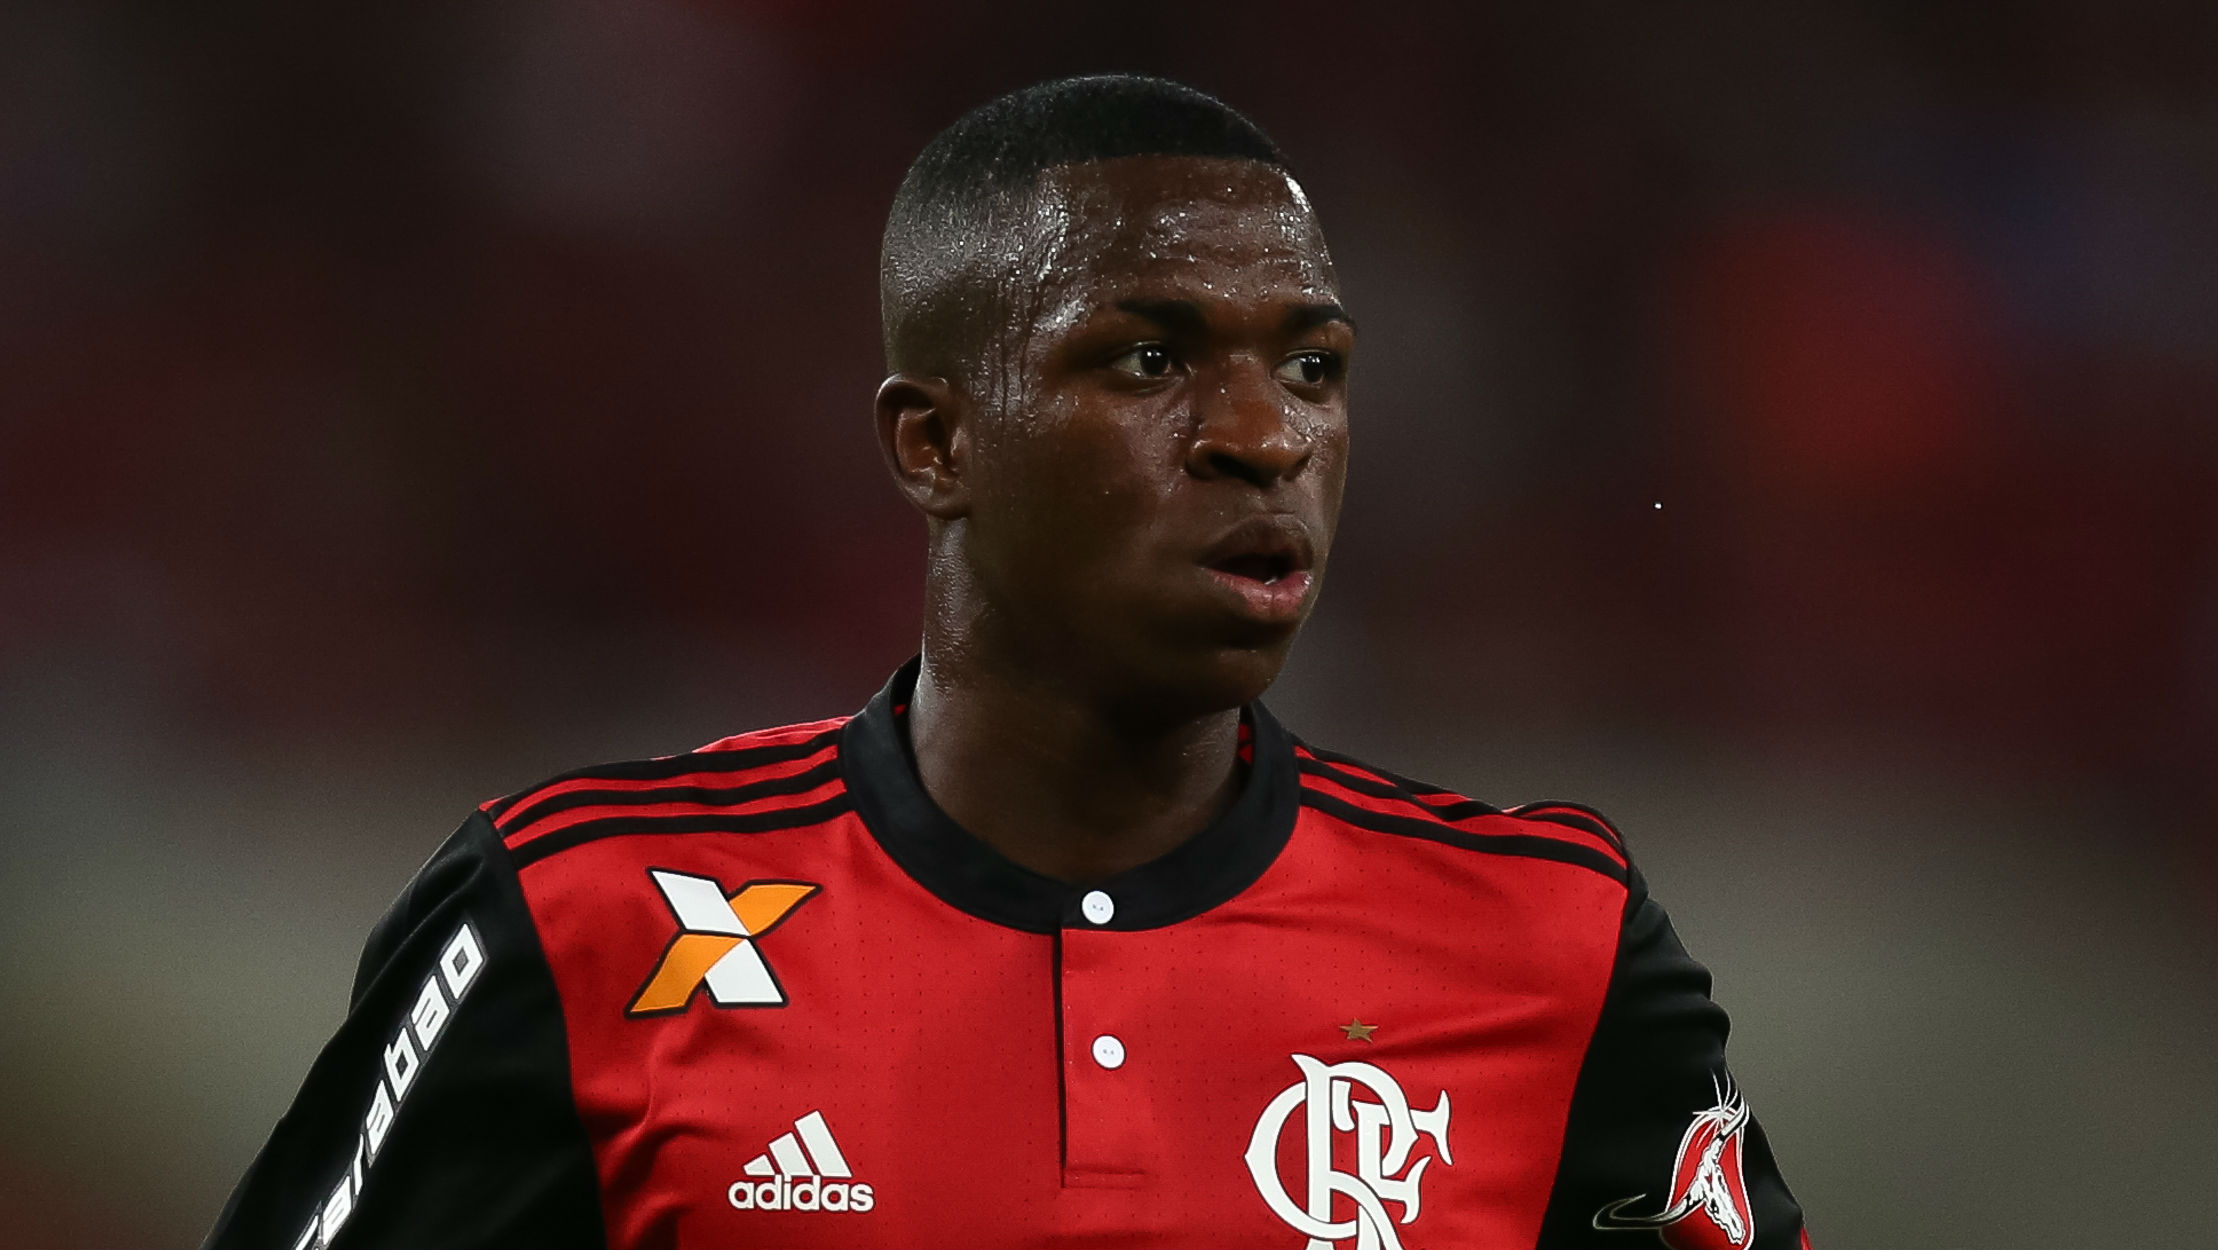 Vinicius Jr To Miss Federation Internationale De Football